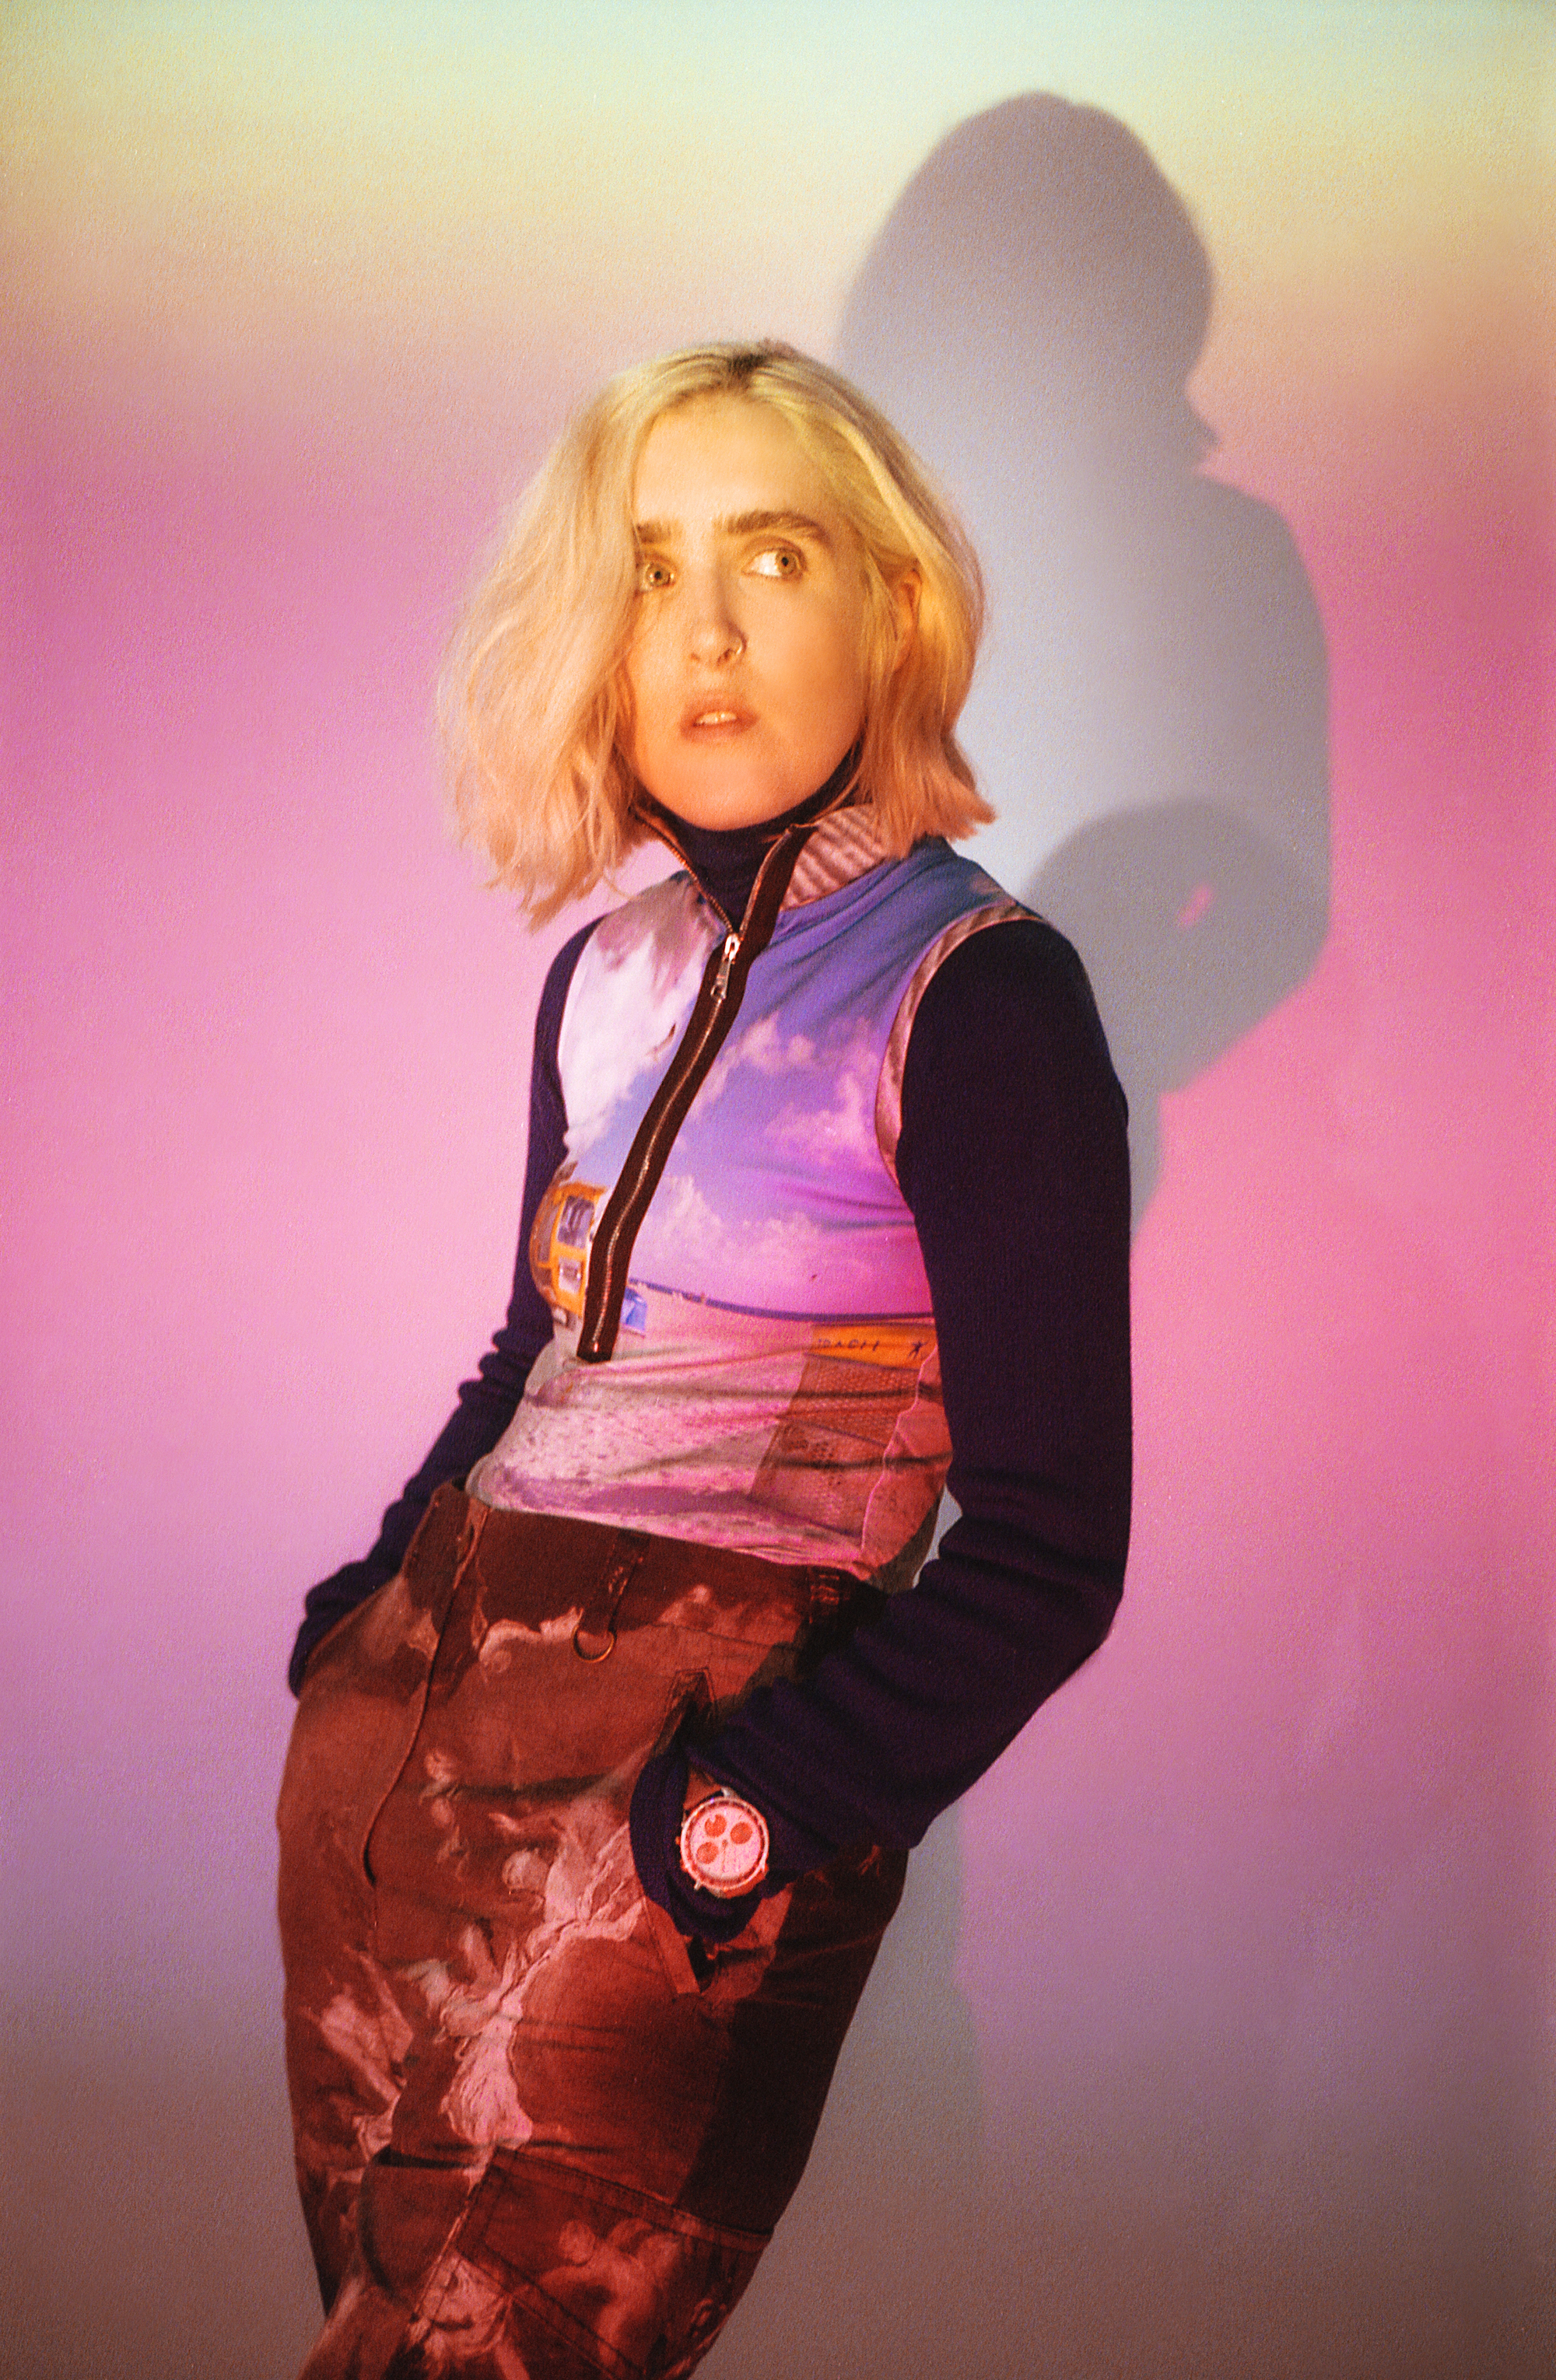 Singer Shura in the Omega Zine in the Summer 19 issue of Wonderland vest